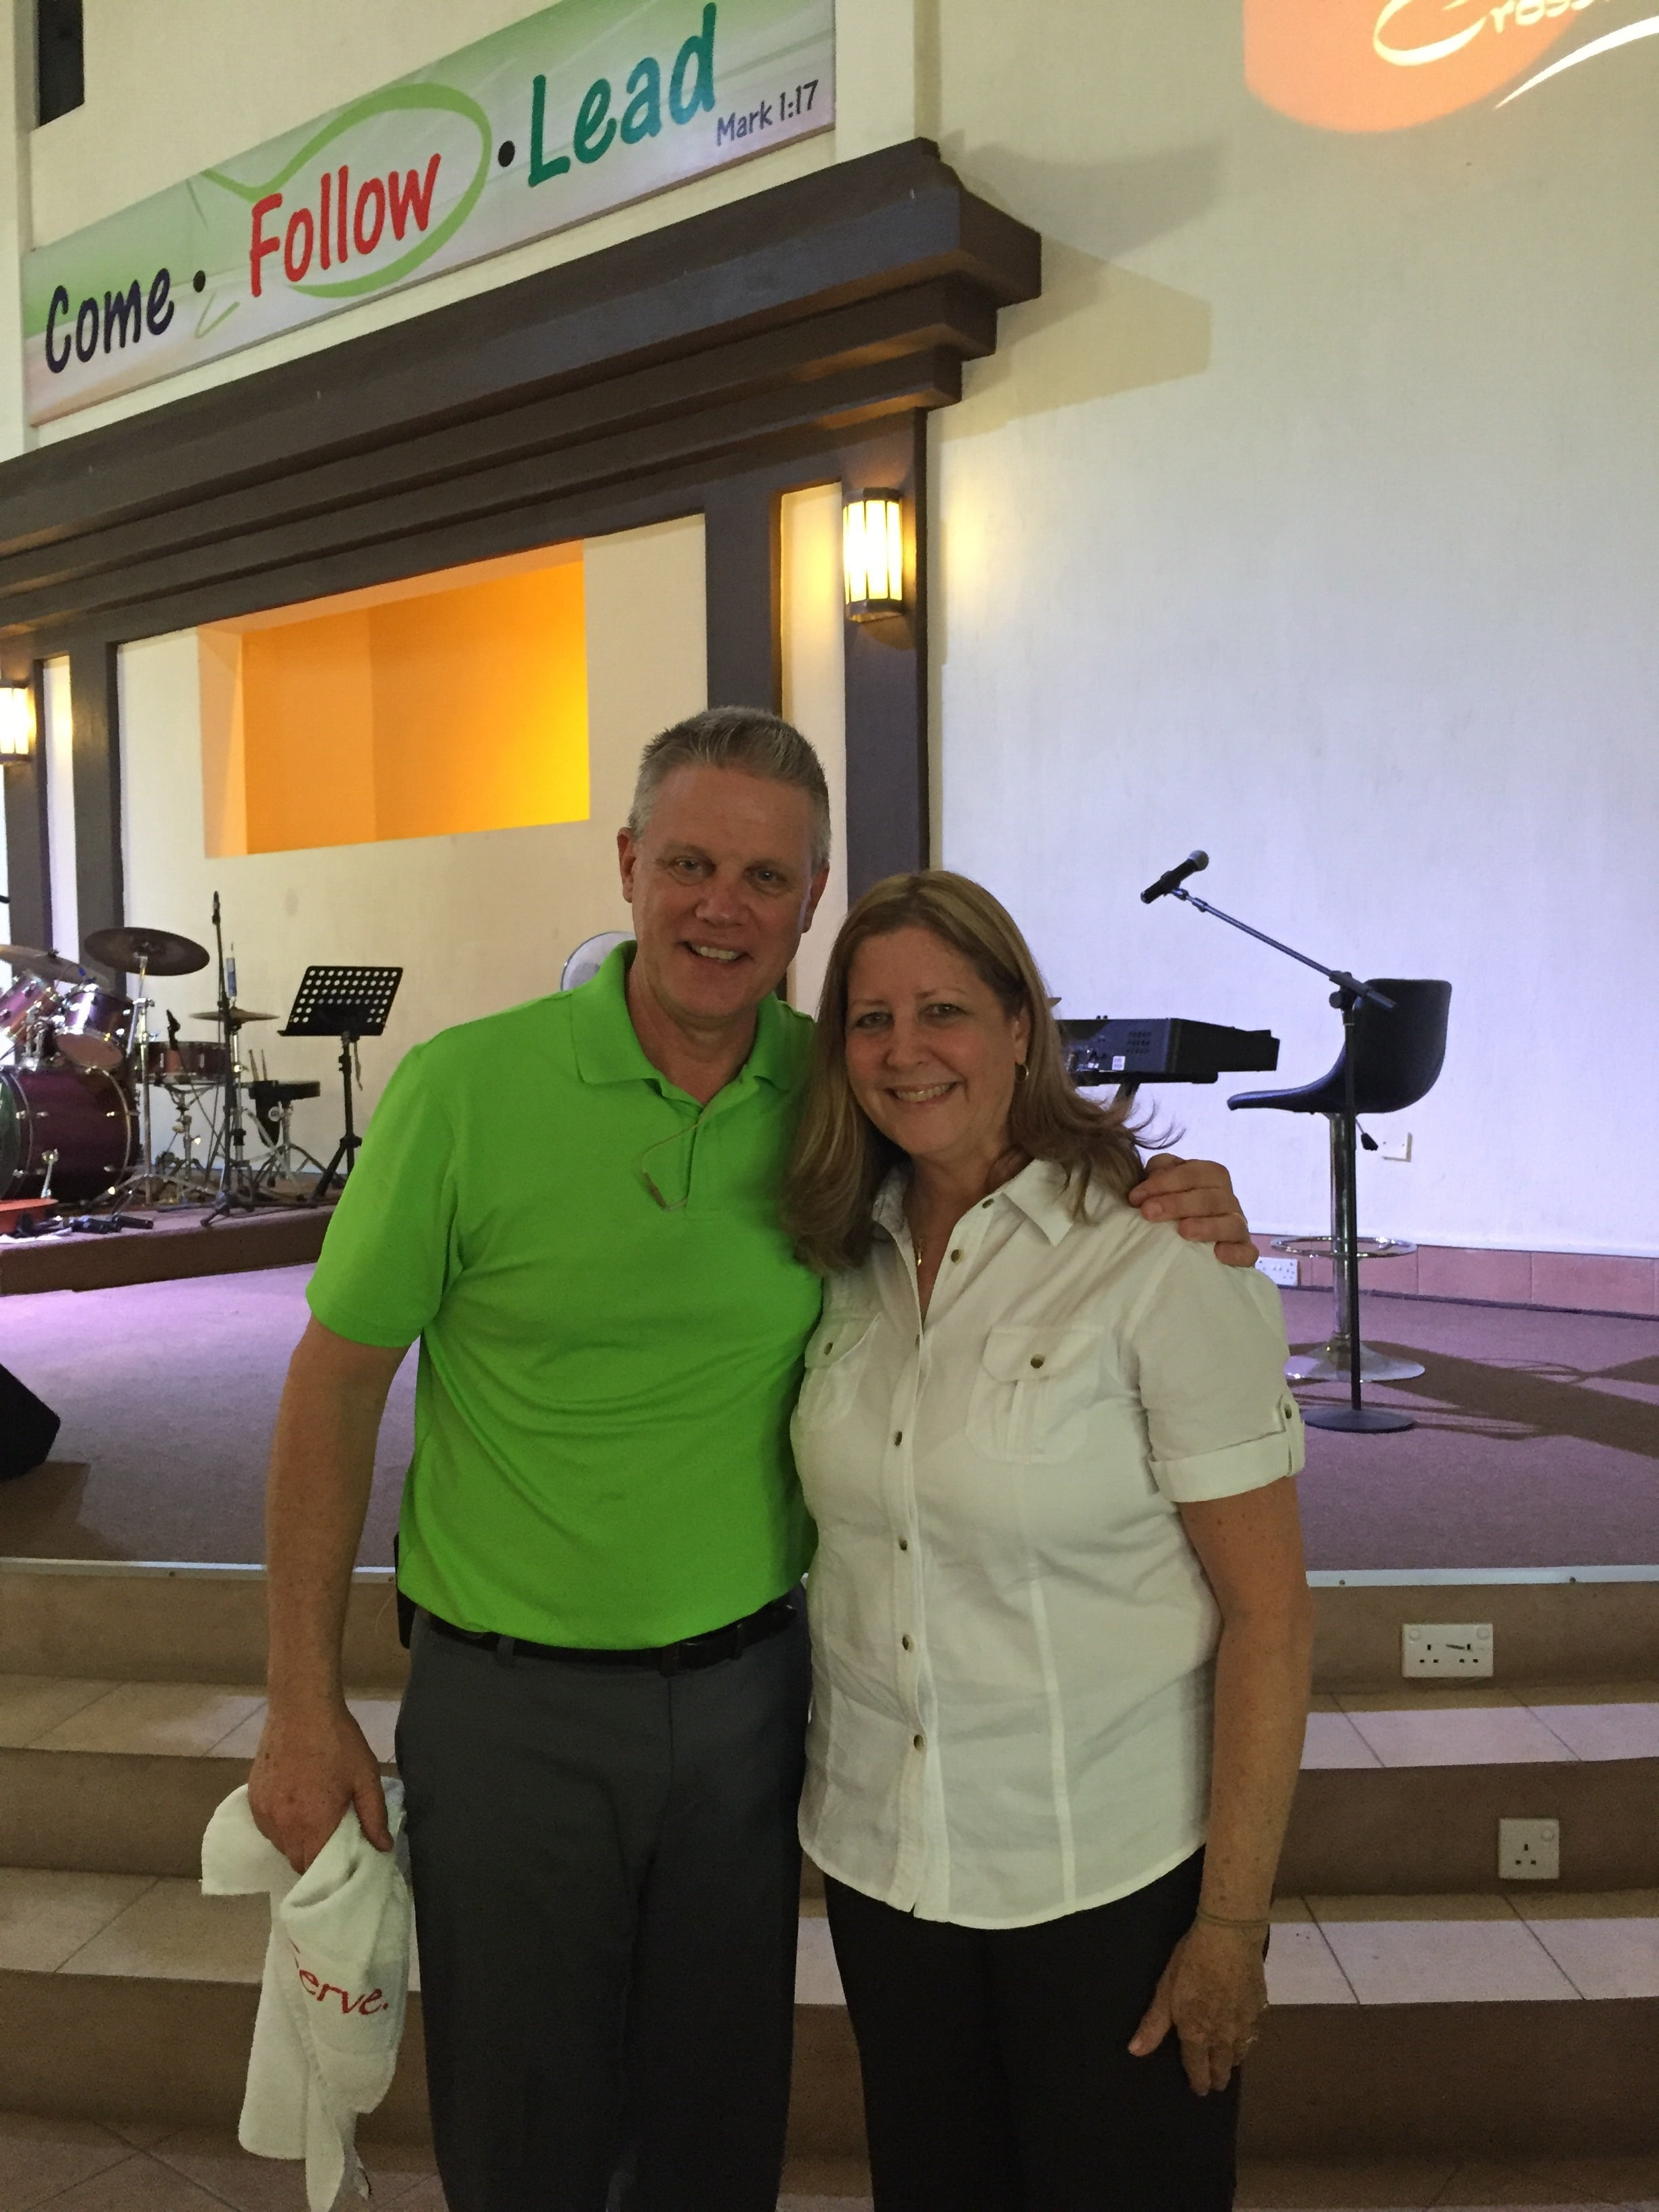 Pastor Jim Horne and his wife Susie